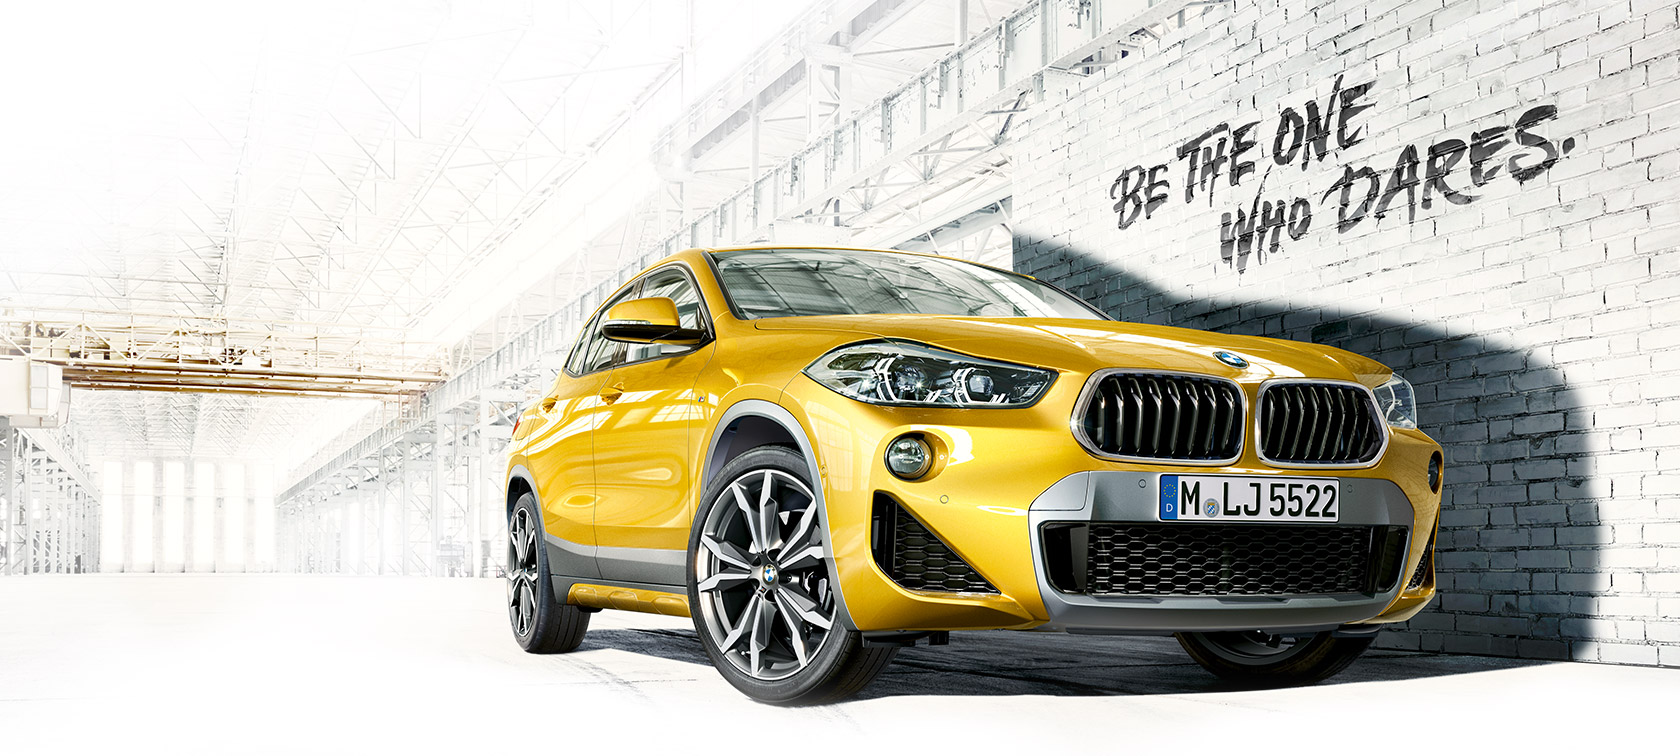 BMW X2 - Be the one who Dares